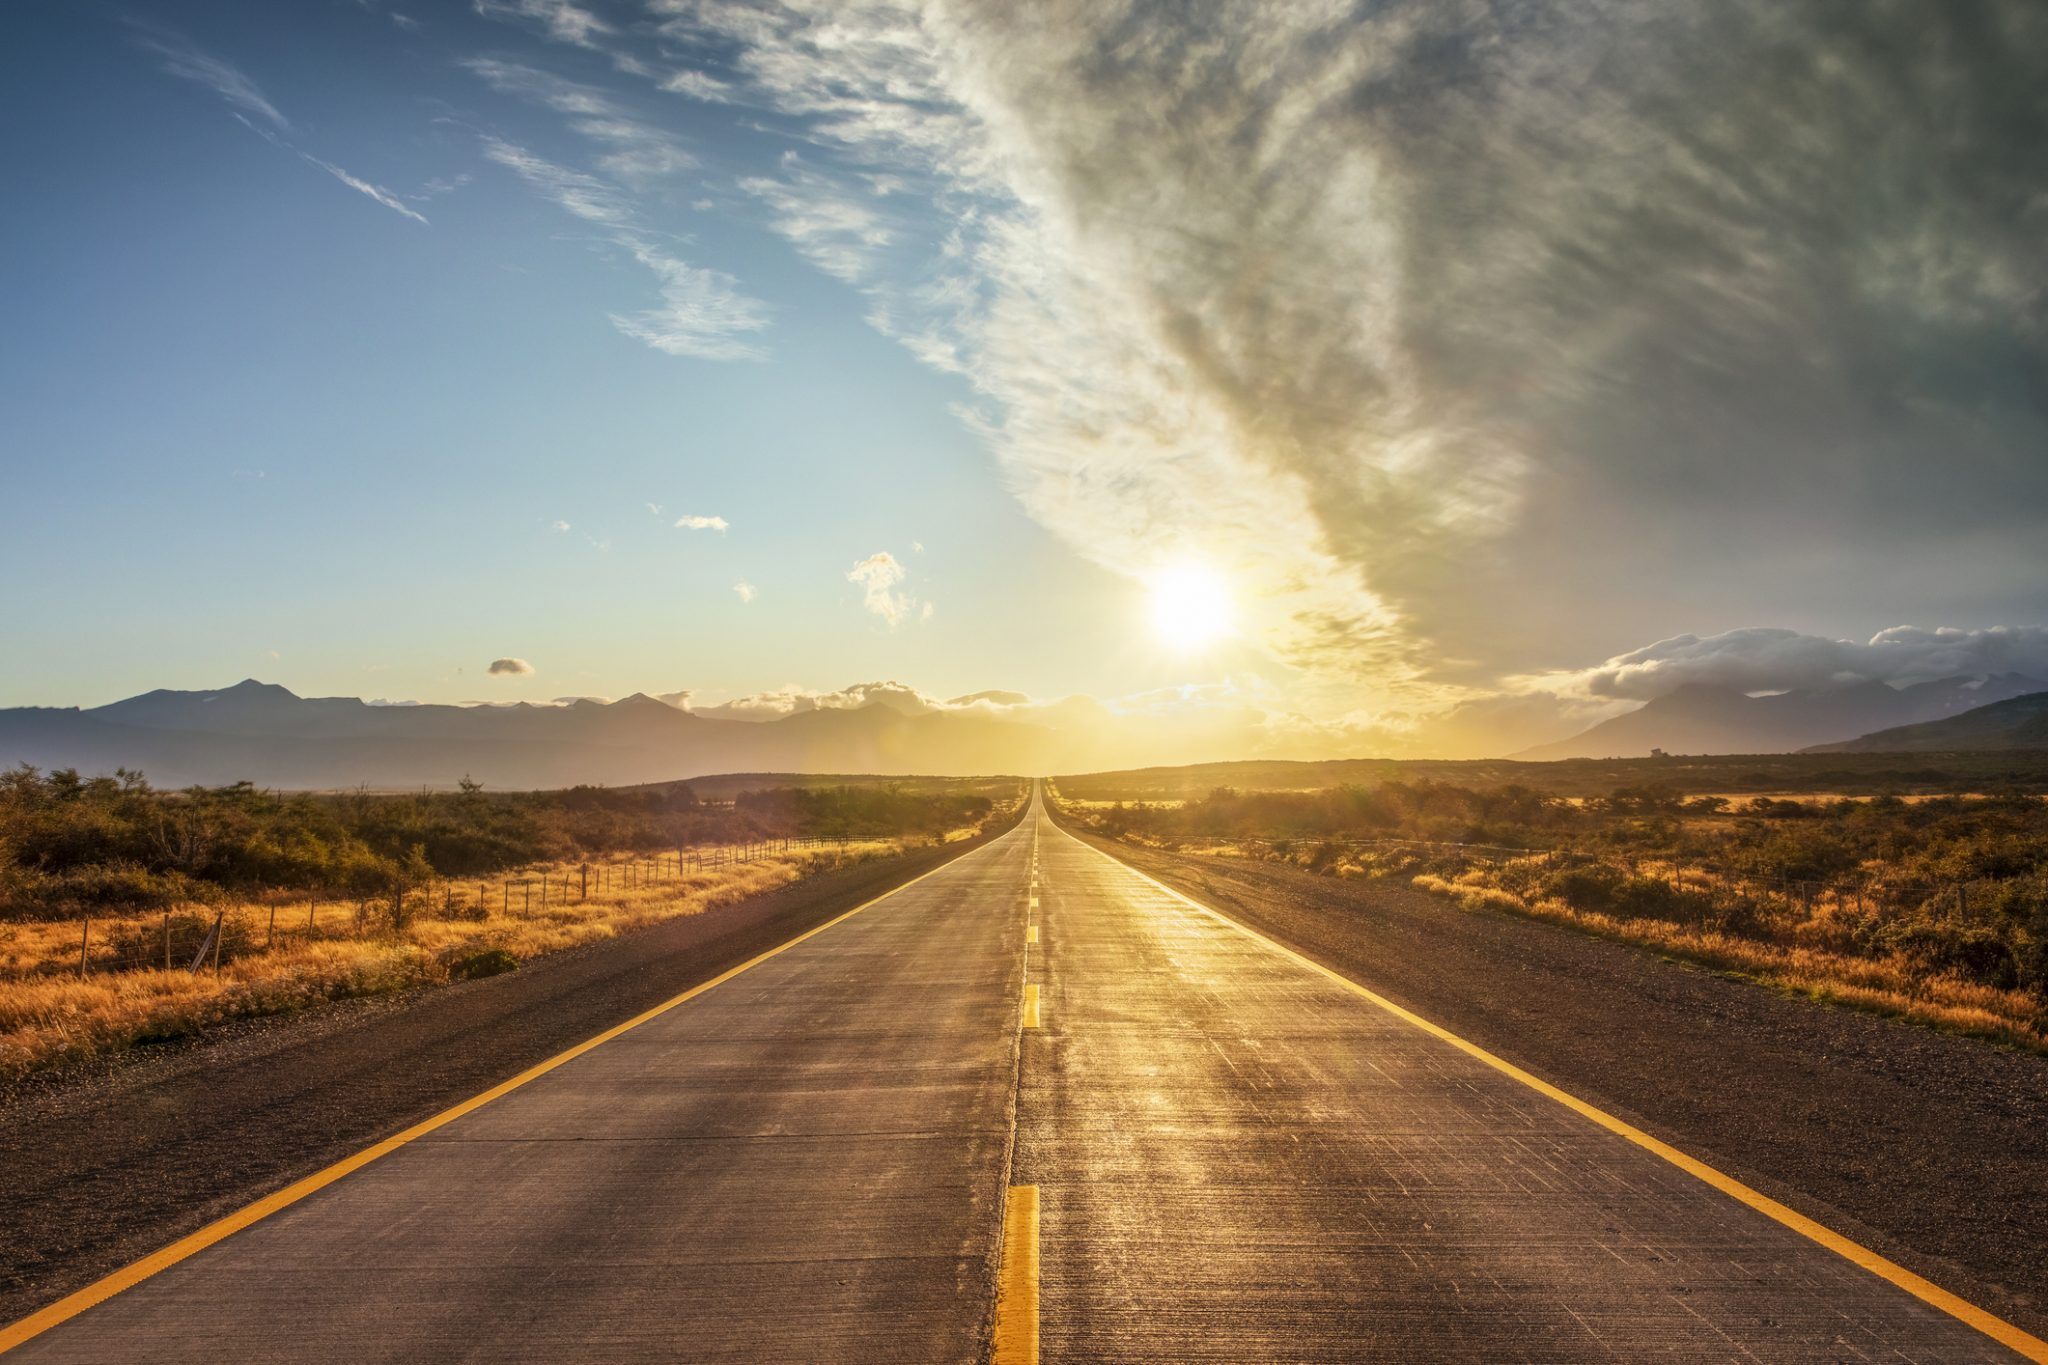 Sunset or sunrise at the end of an empty highway in the desert.